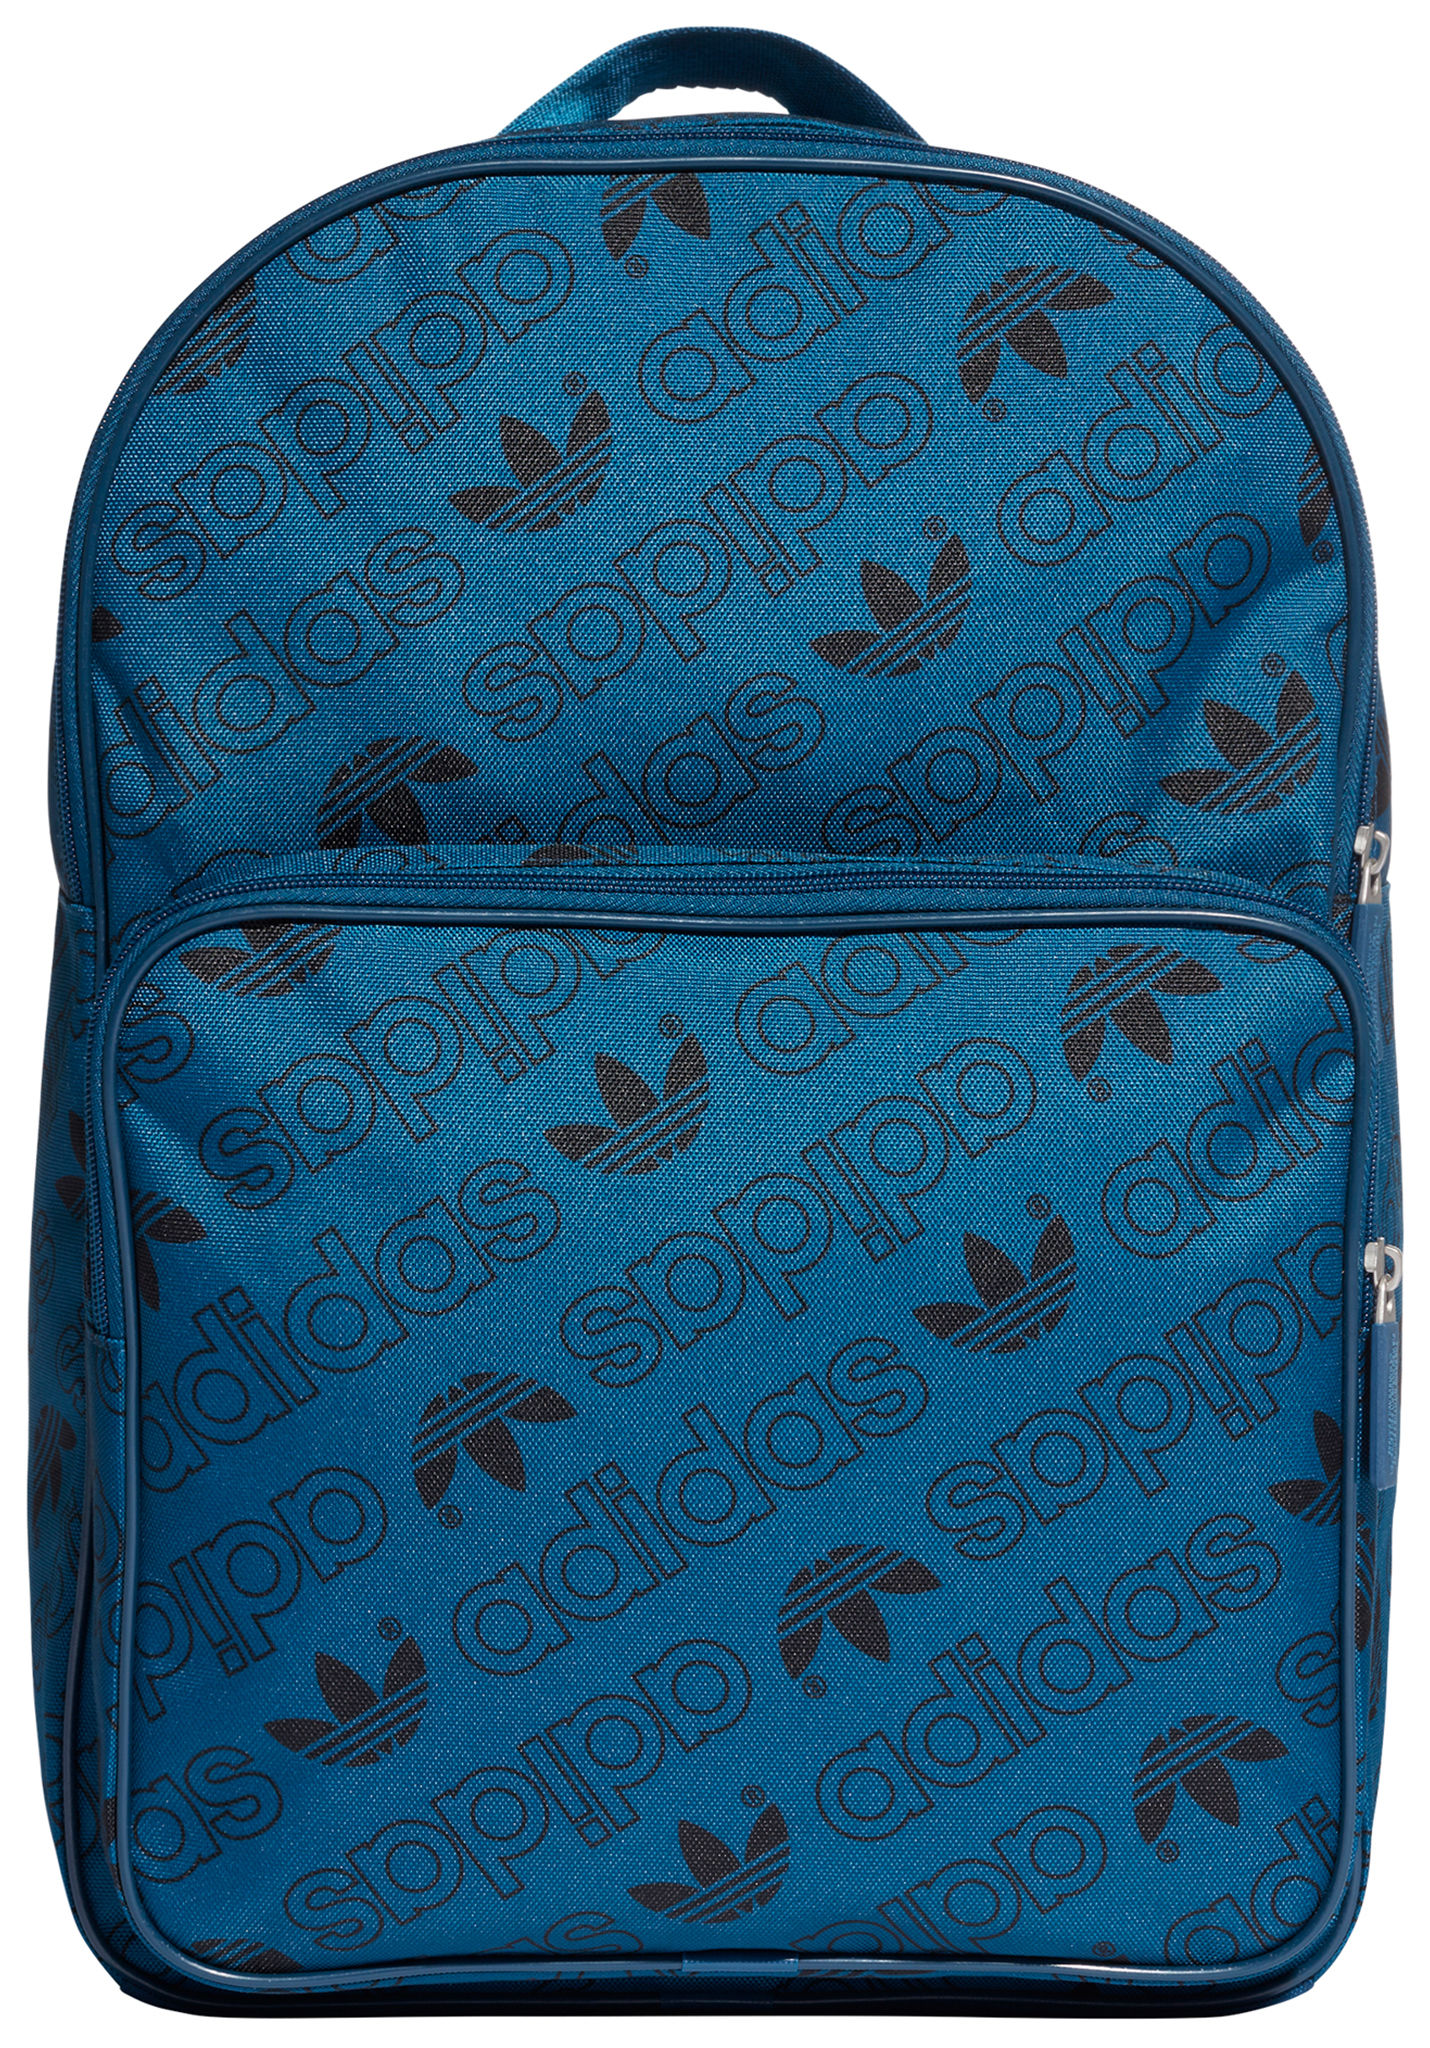 18f59309033 ADIDAS ORIGINALS Classic Multi Adicolor - Backpack for Men - Blue - Planet  Sports